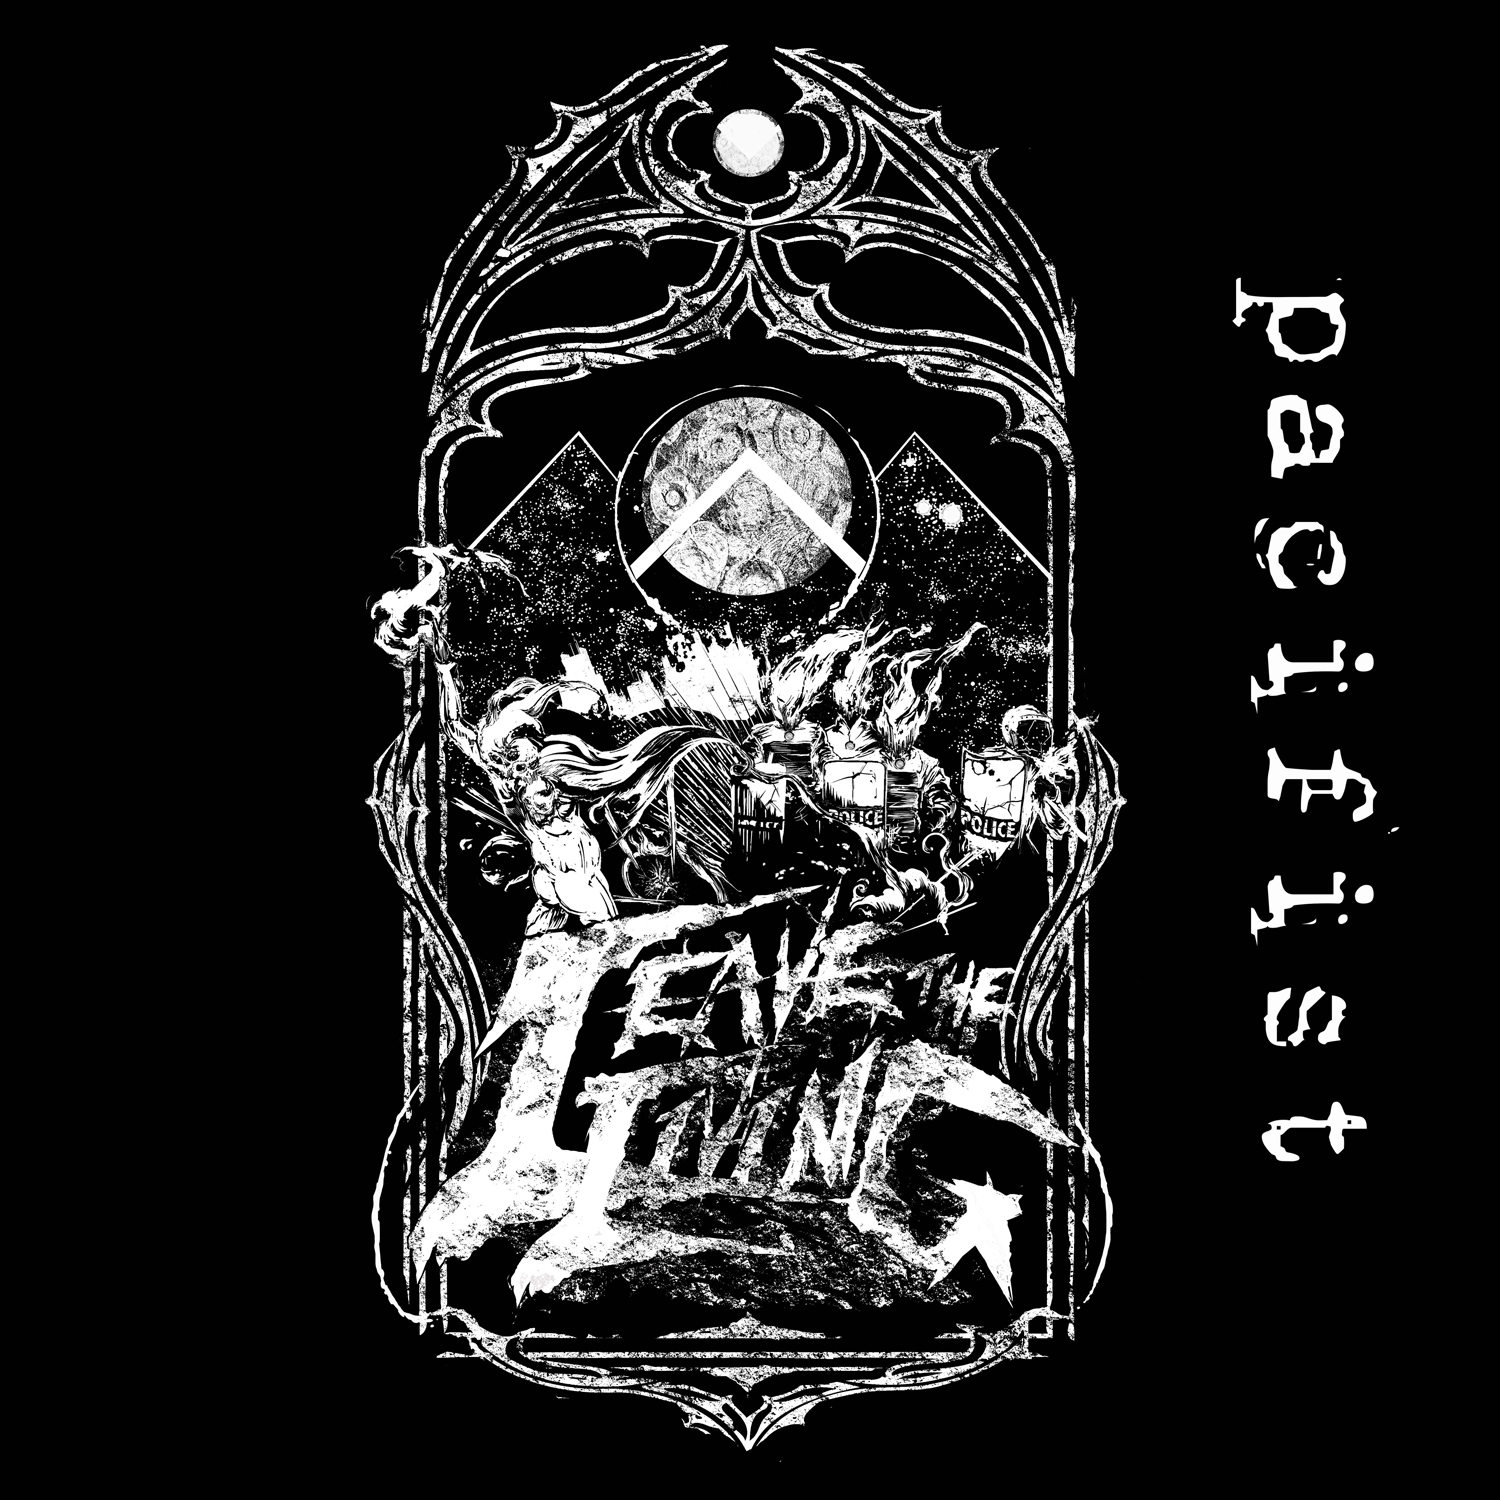 LEAVE THE LIVING Streaming New Track Sink or Swim for Upcoming Debut Album